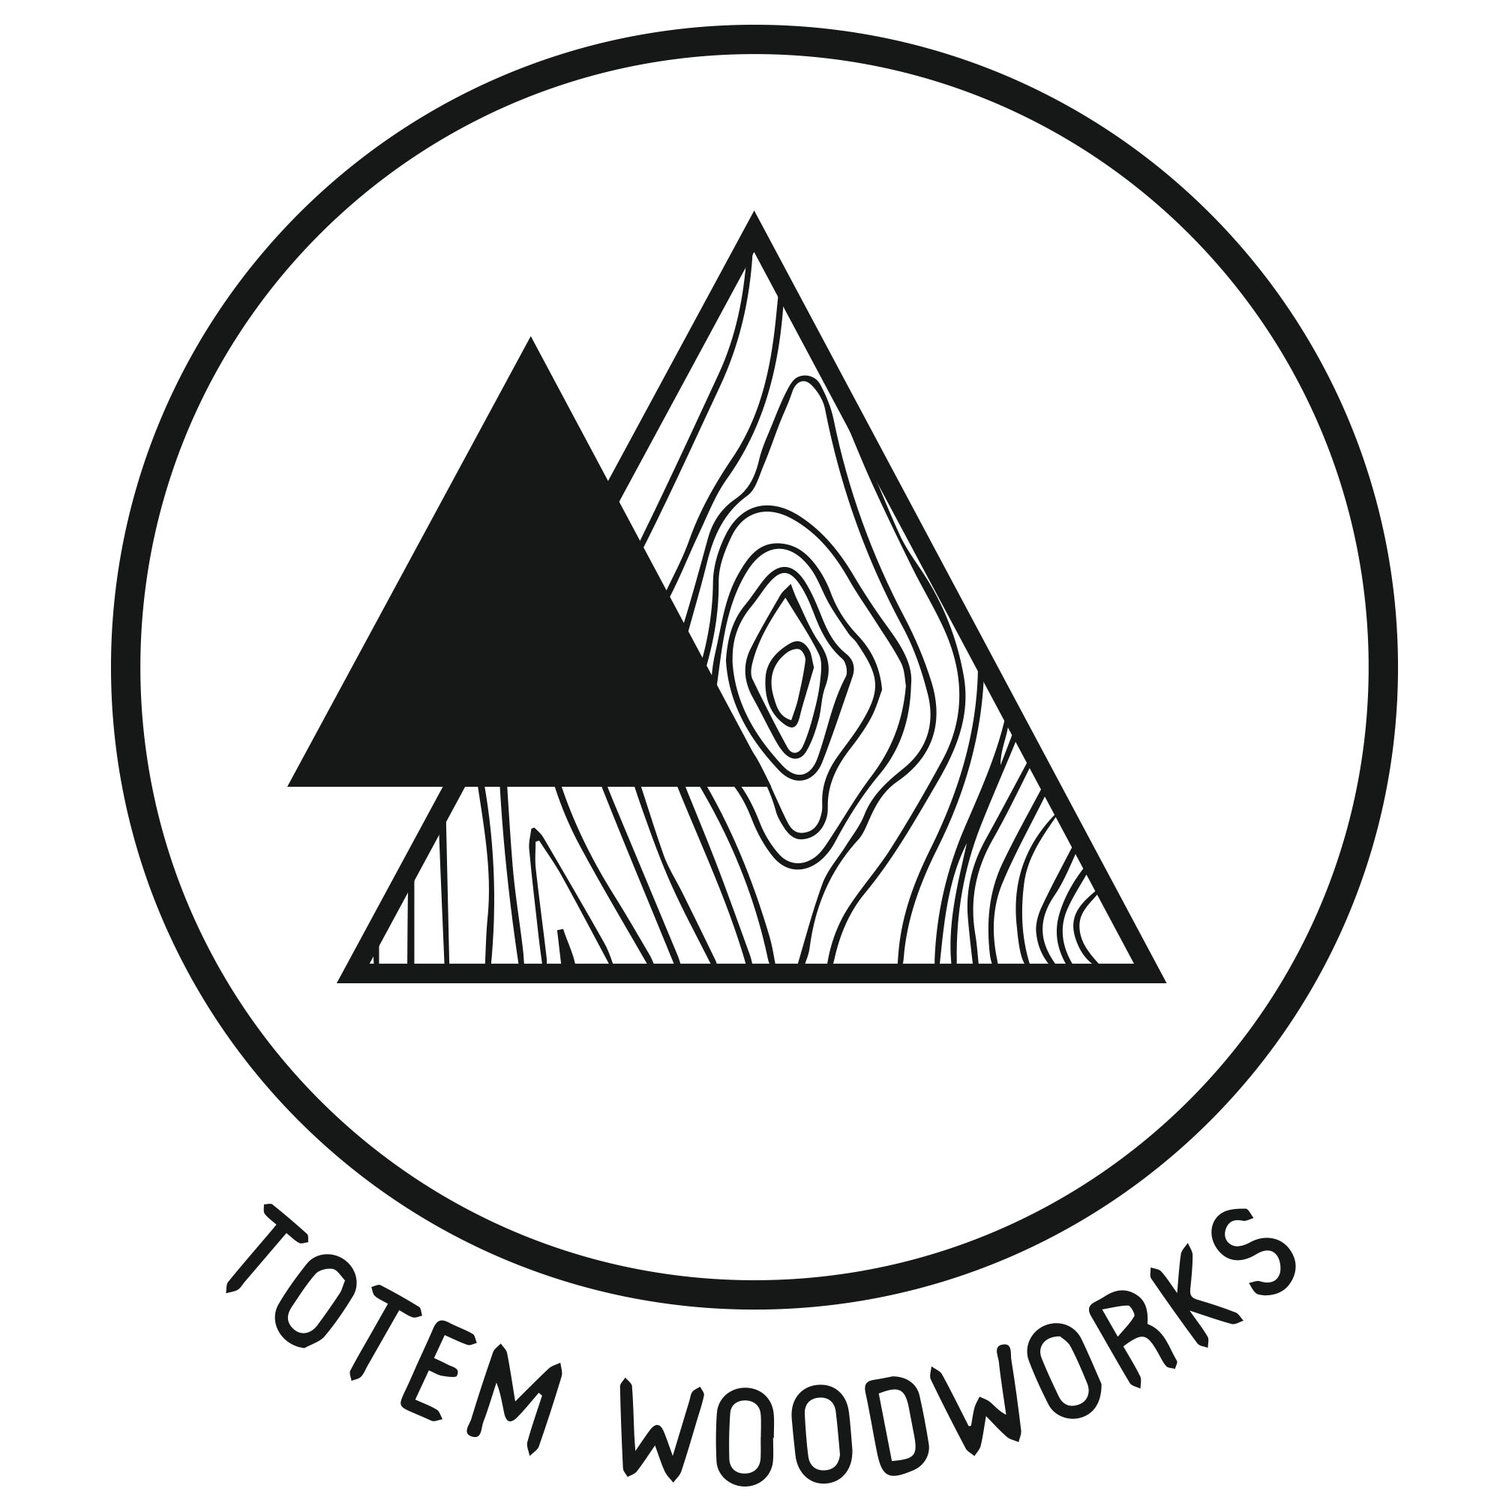 Woodworking, Custom Woodworking, Totem